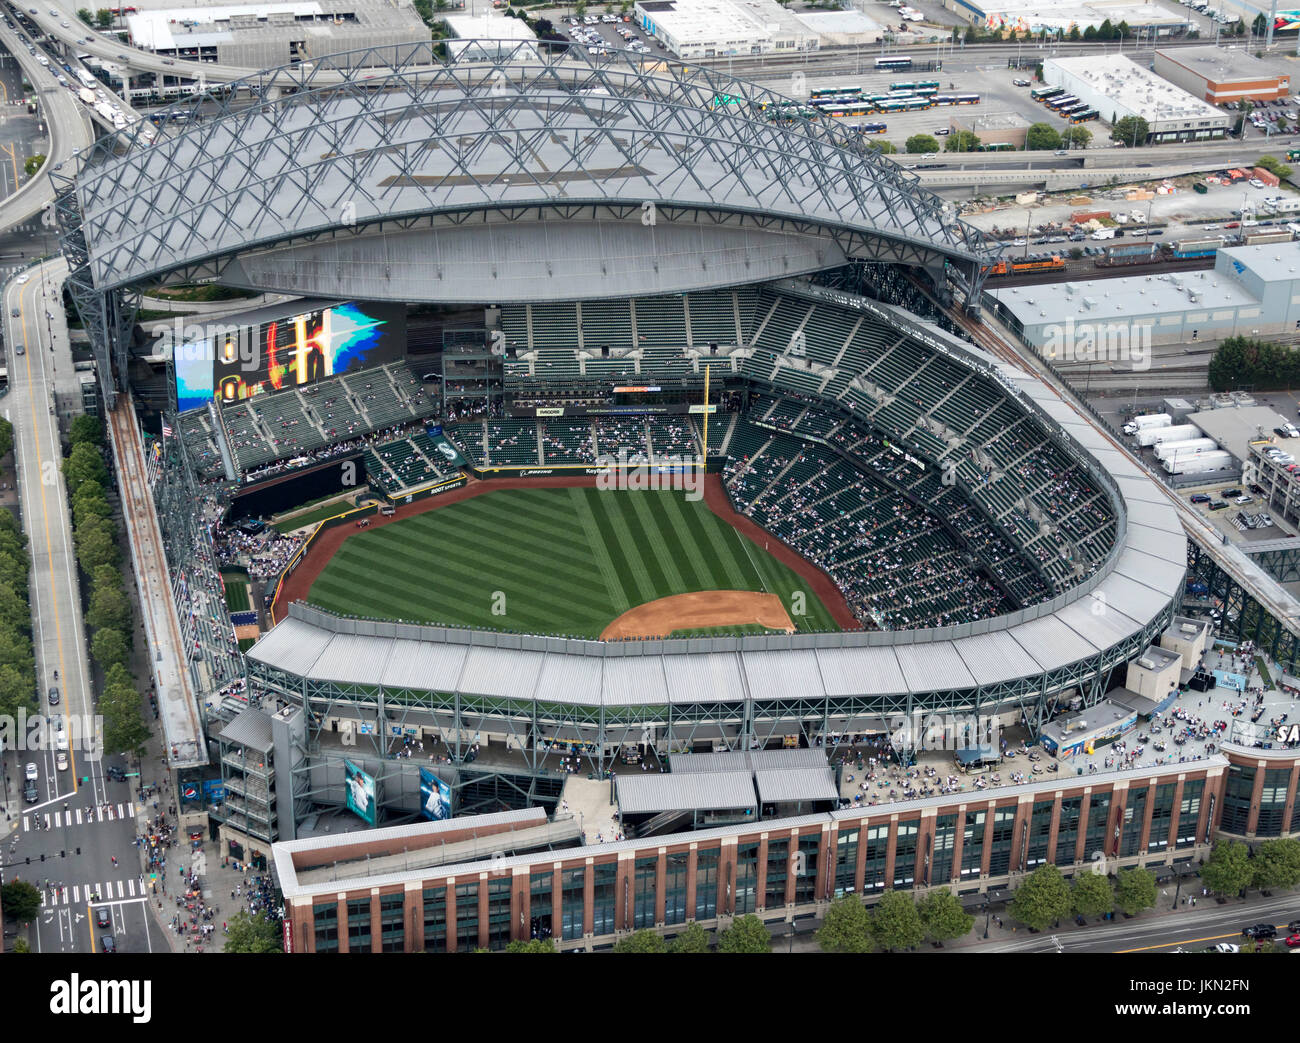 Aerial View Of Safeco Field Retractable Roof Baseball